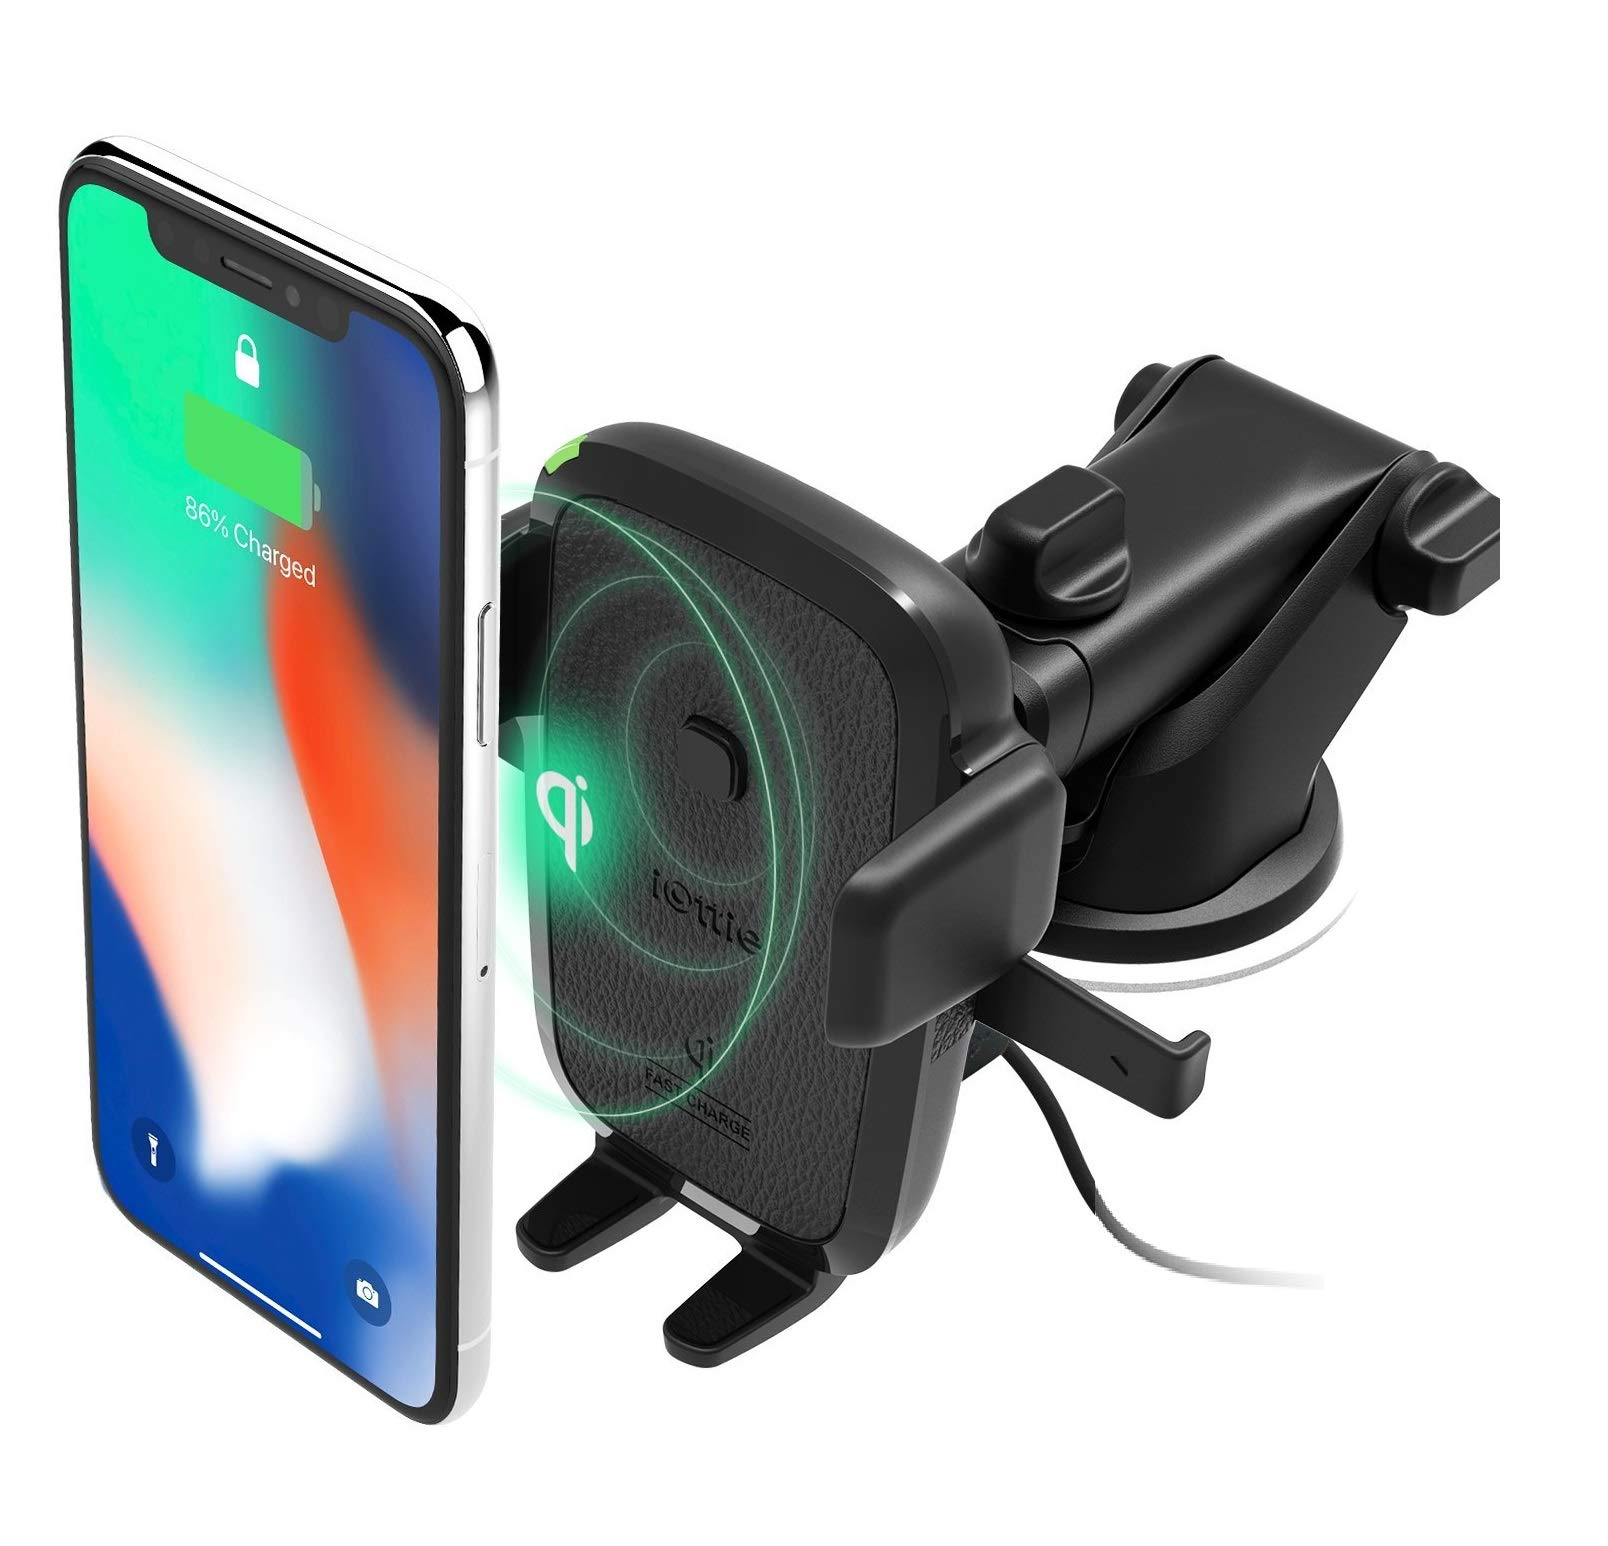 iOttie Easy One Touch Wireless Qi Fast Charge Car Mount Kit || Fast Charge: Samsung Galaxy S10 S9 Plus S8 S7 Edge Note 8 5 | Standard Charge: iPhone X 8 Plus & Qi Enabled Devices | + Dual Car Charger by iOttie